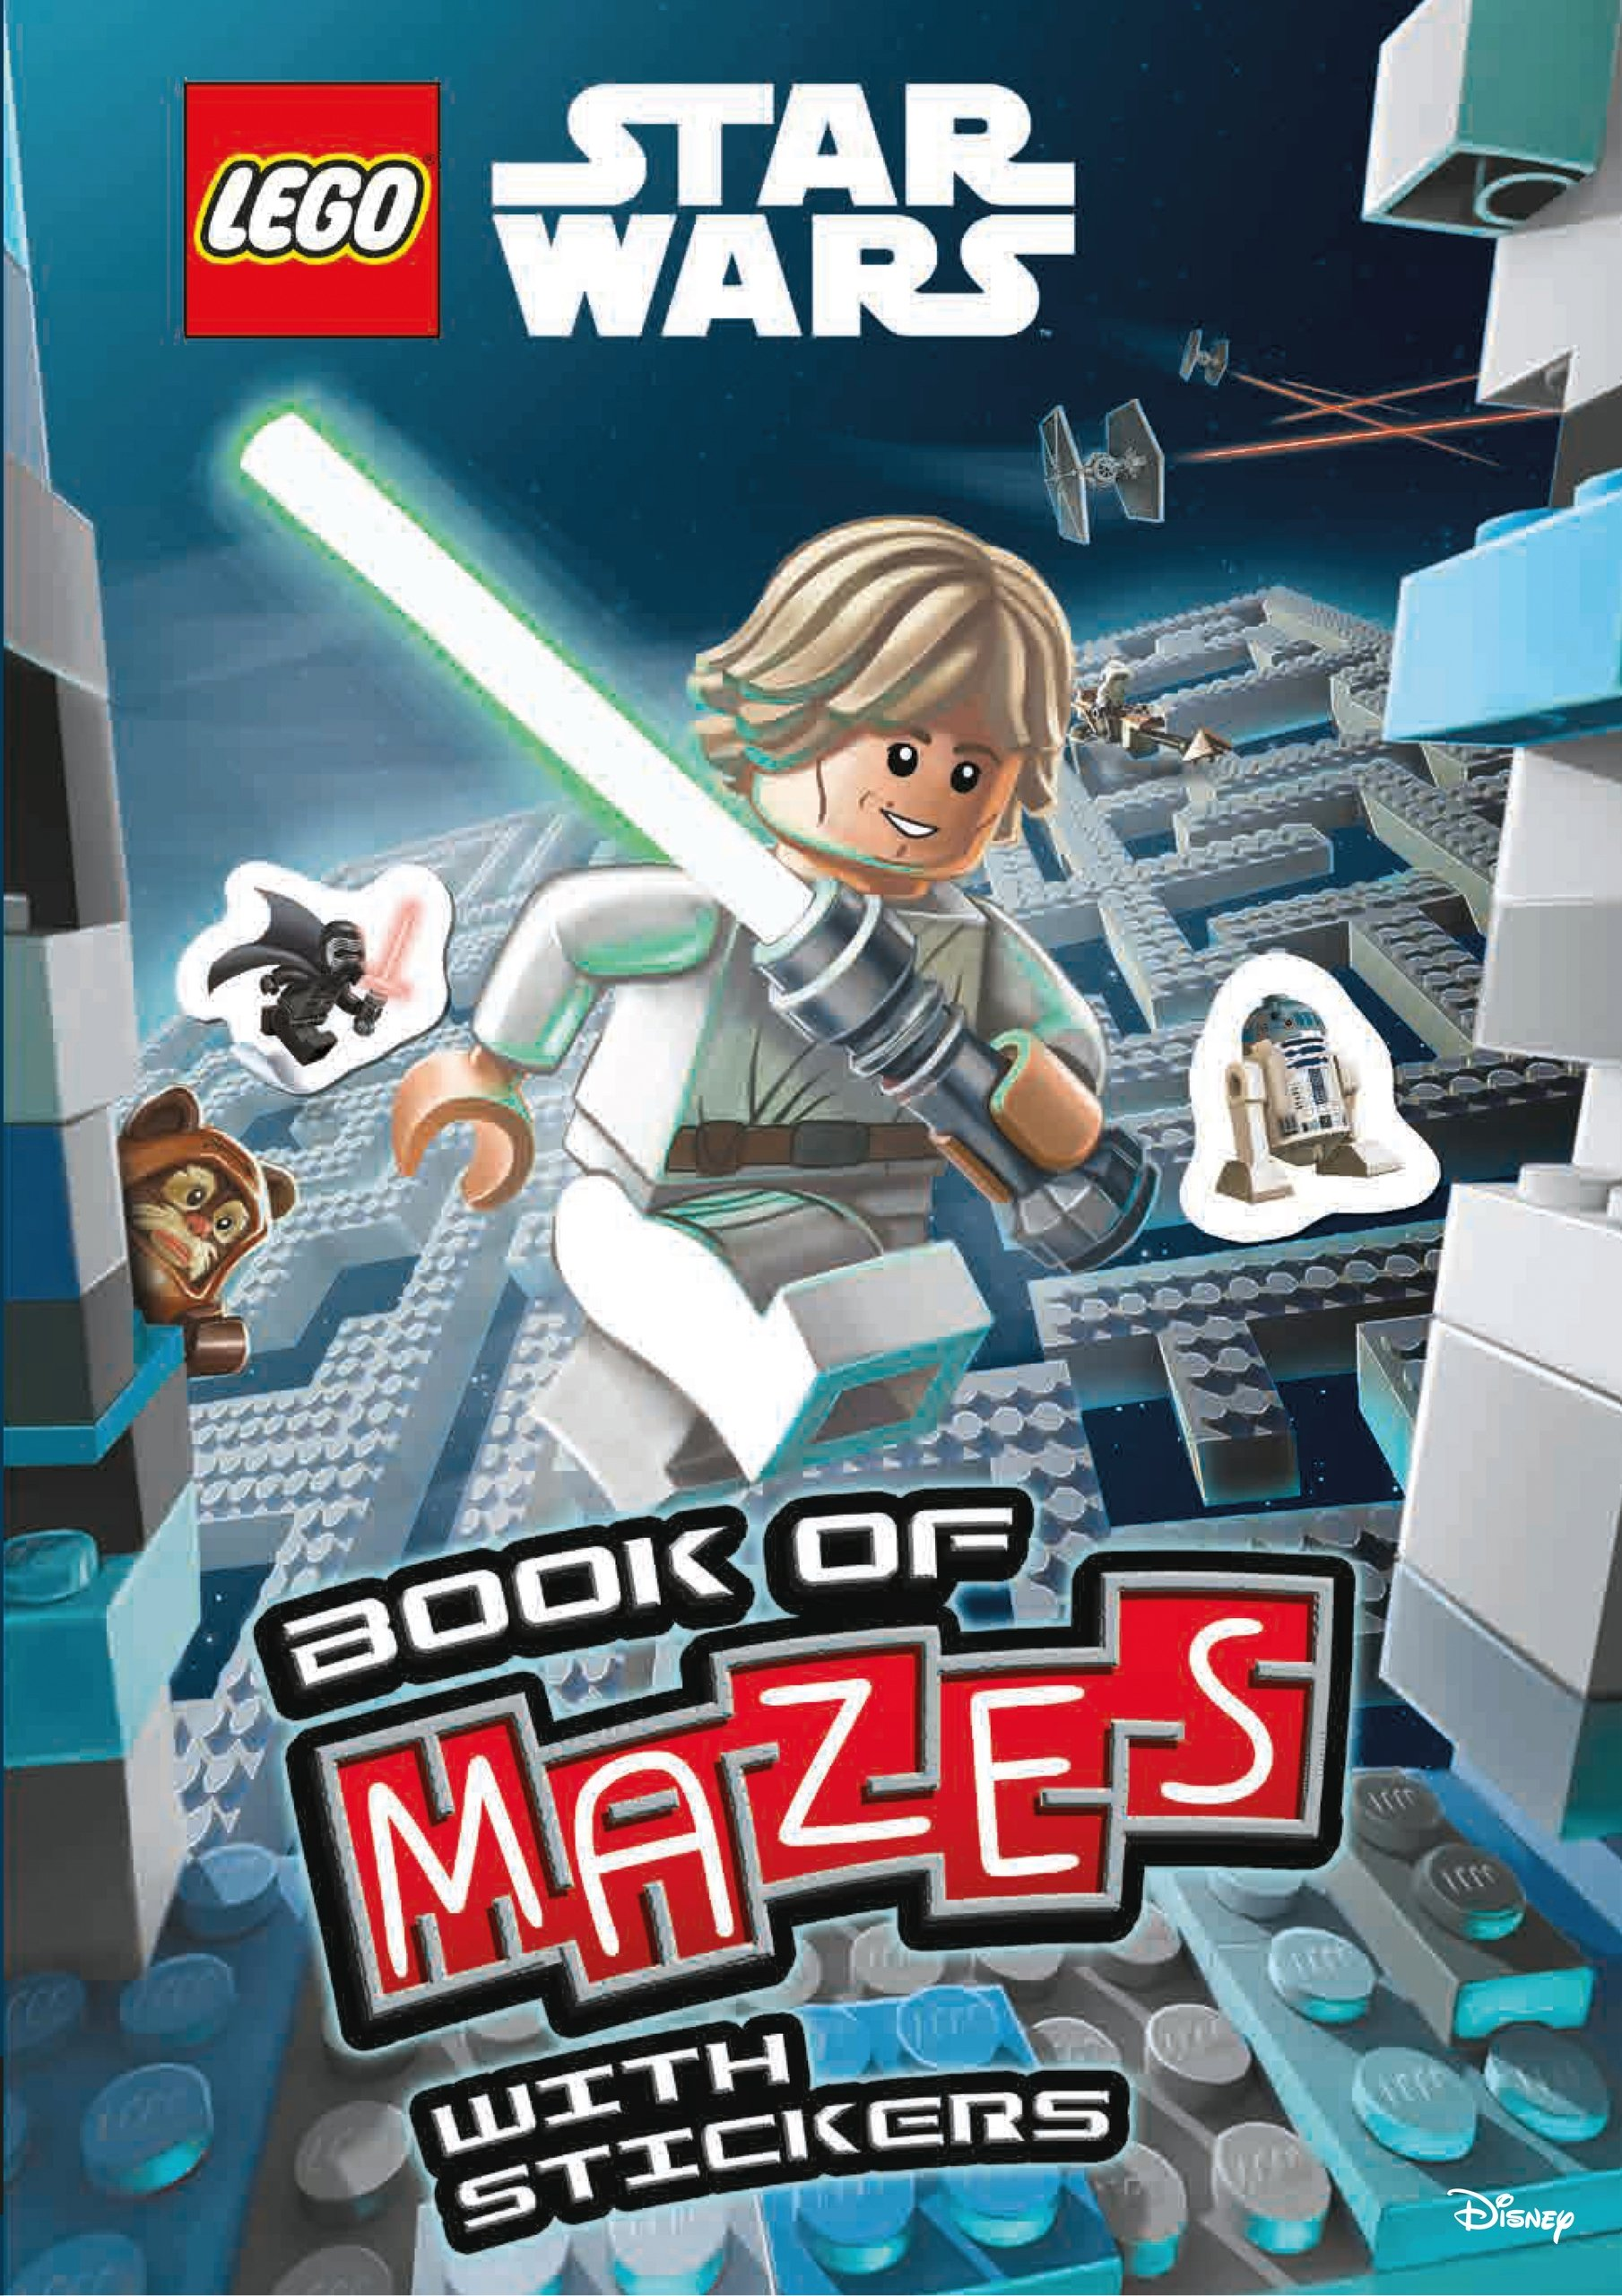 Lego Star Wars Book of Mazes